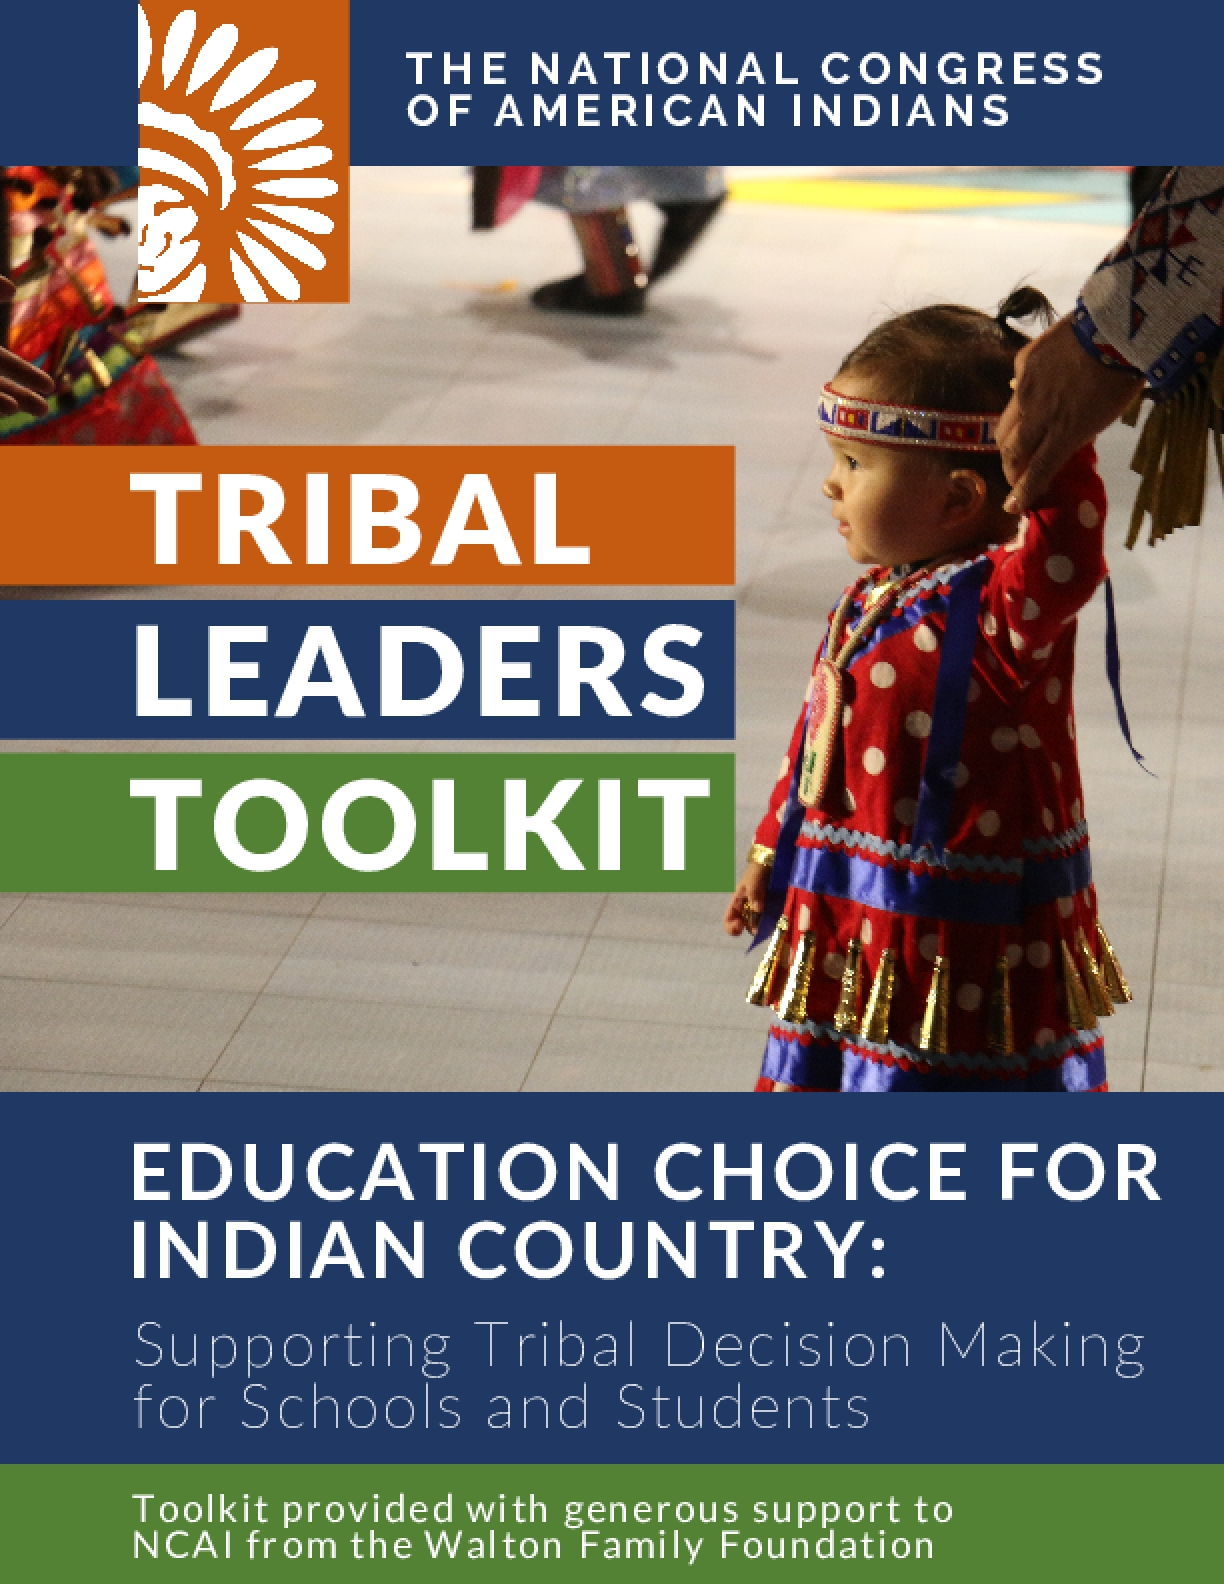 Education Choice for Indian Country: Supporting Tribal Decision Making for Schools and Students